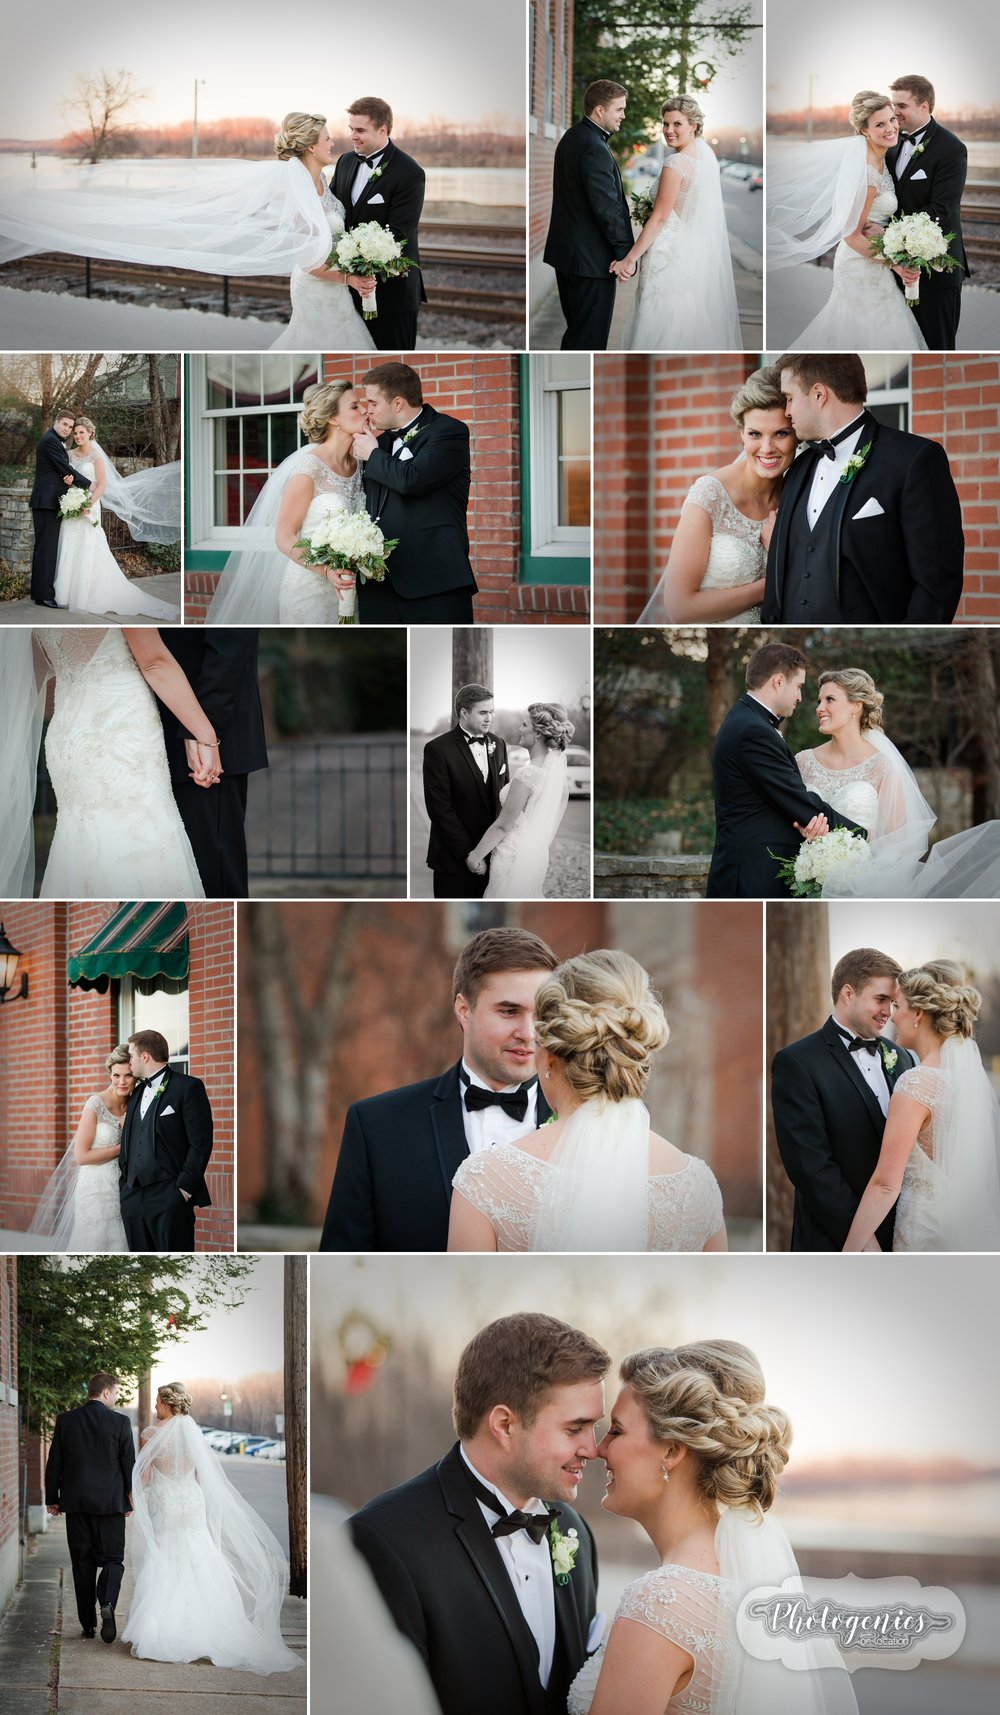 nye_wedding_new_years_eve_sunset_winter_light_photography_poses_wedding_street.jpg